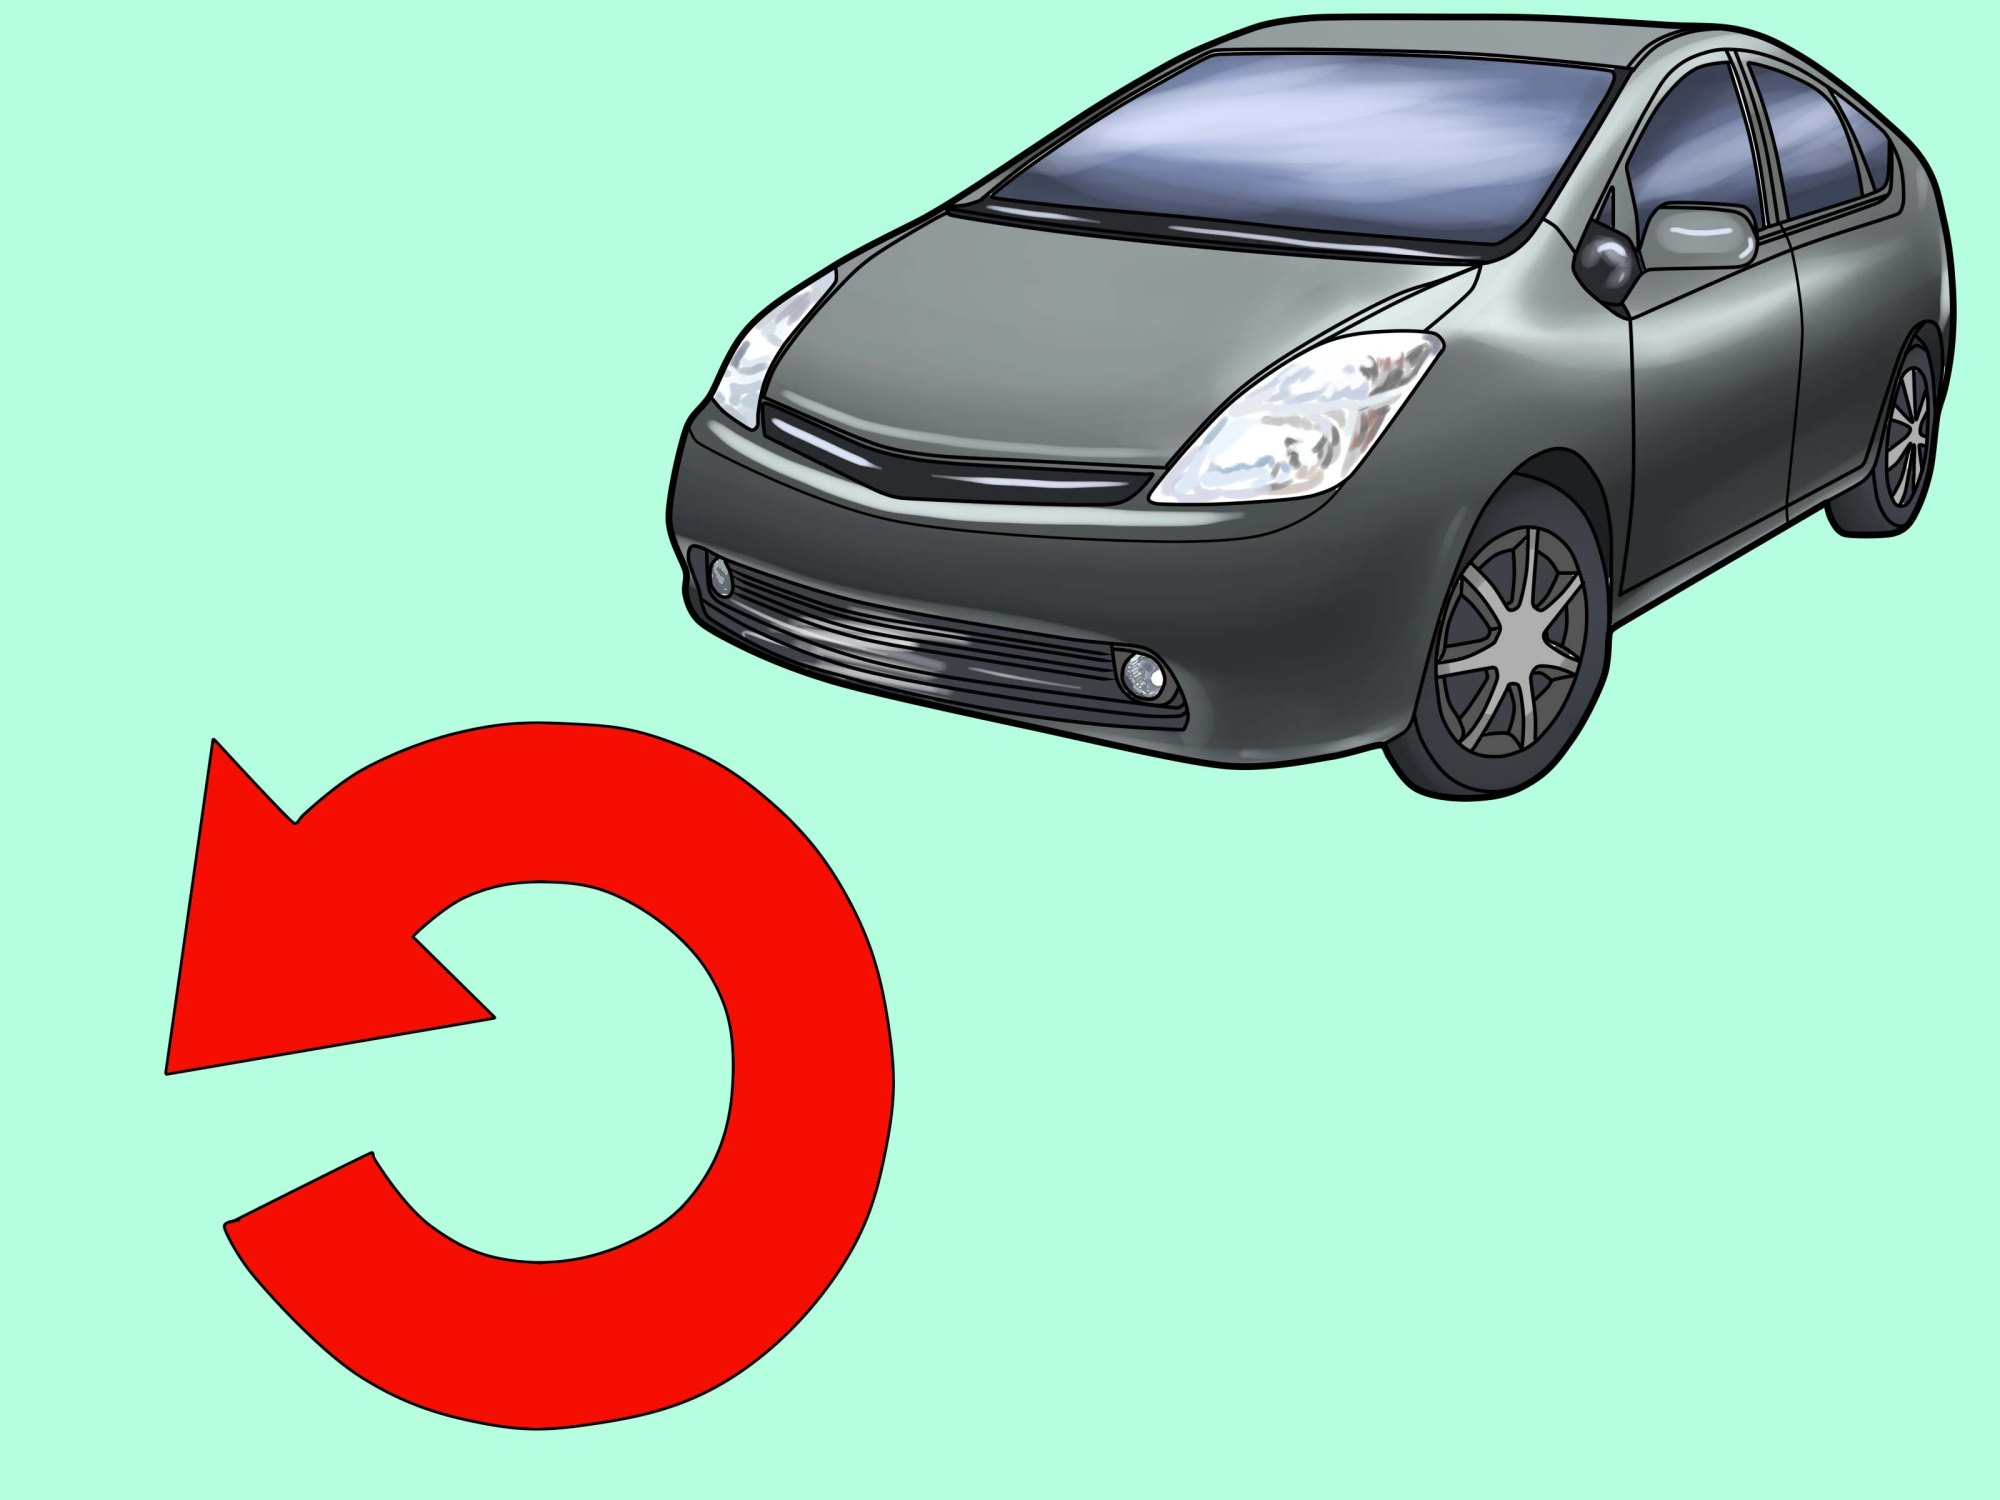 hight resolution of how to change the hid headlights on a 2007 prius without removing bumper